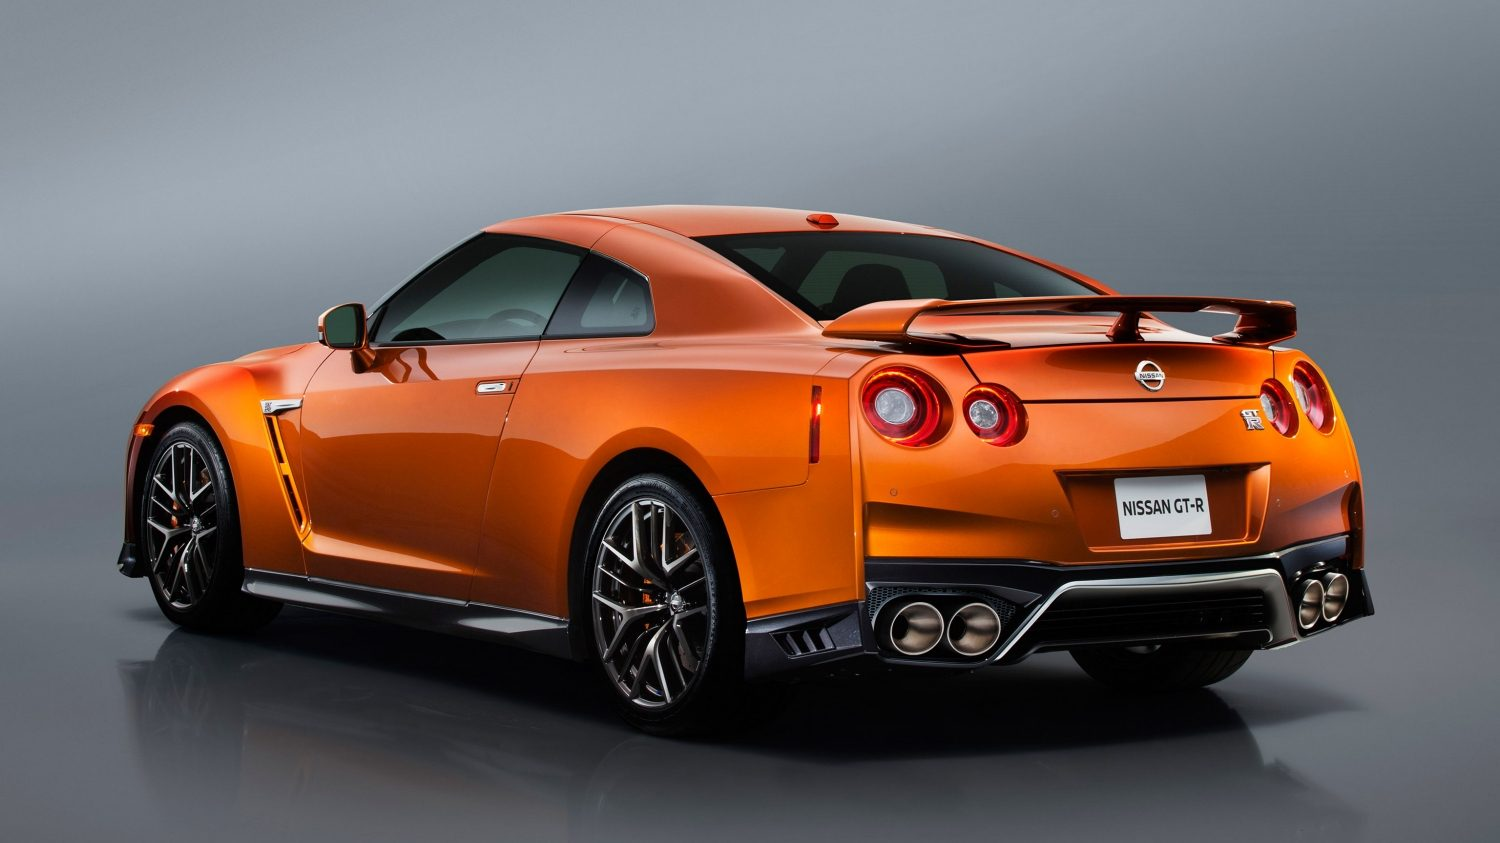 GTR in Orange Passenger Rear view